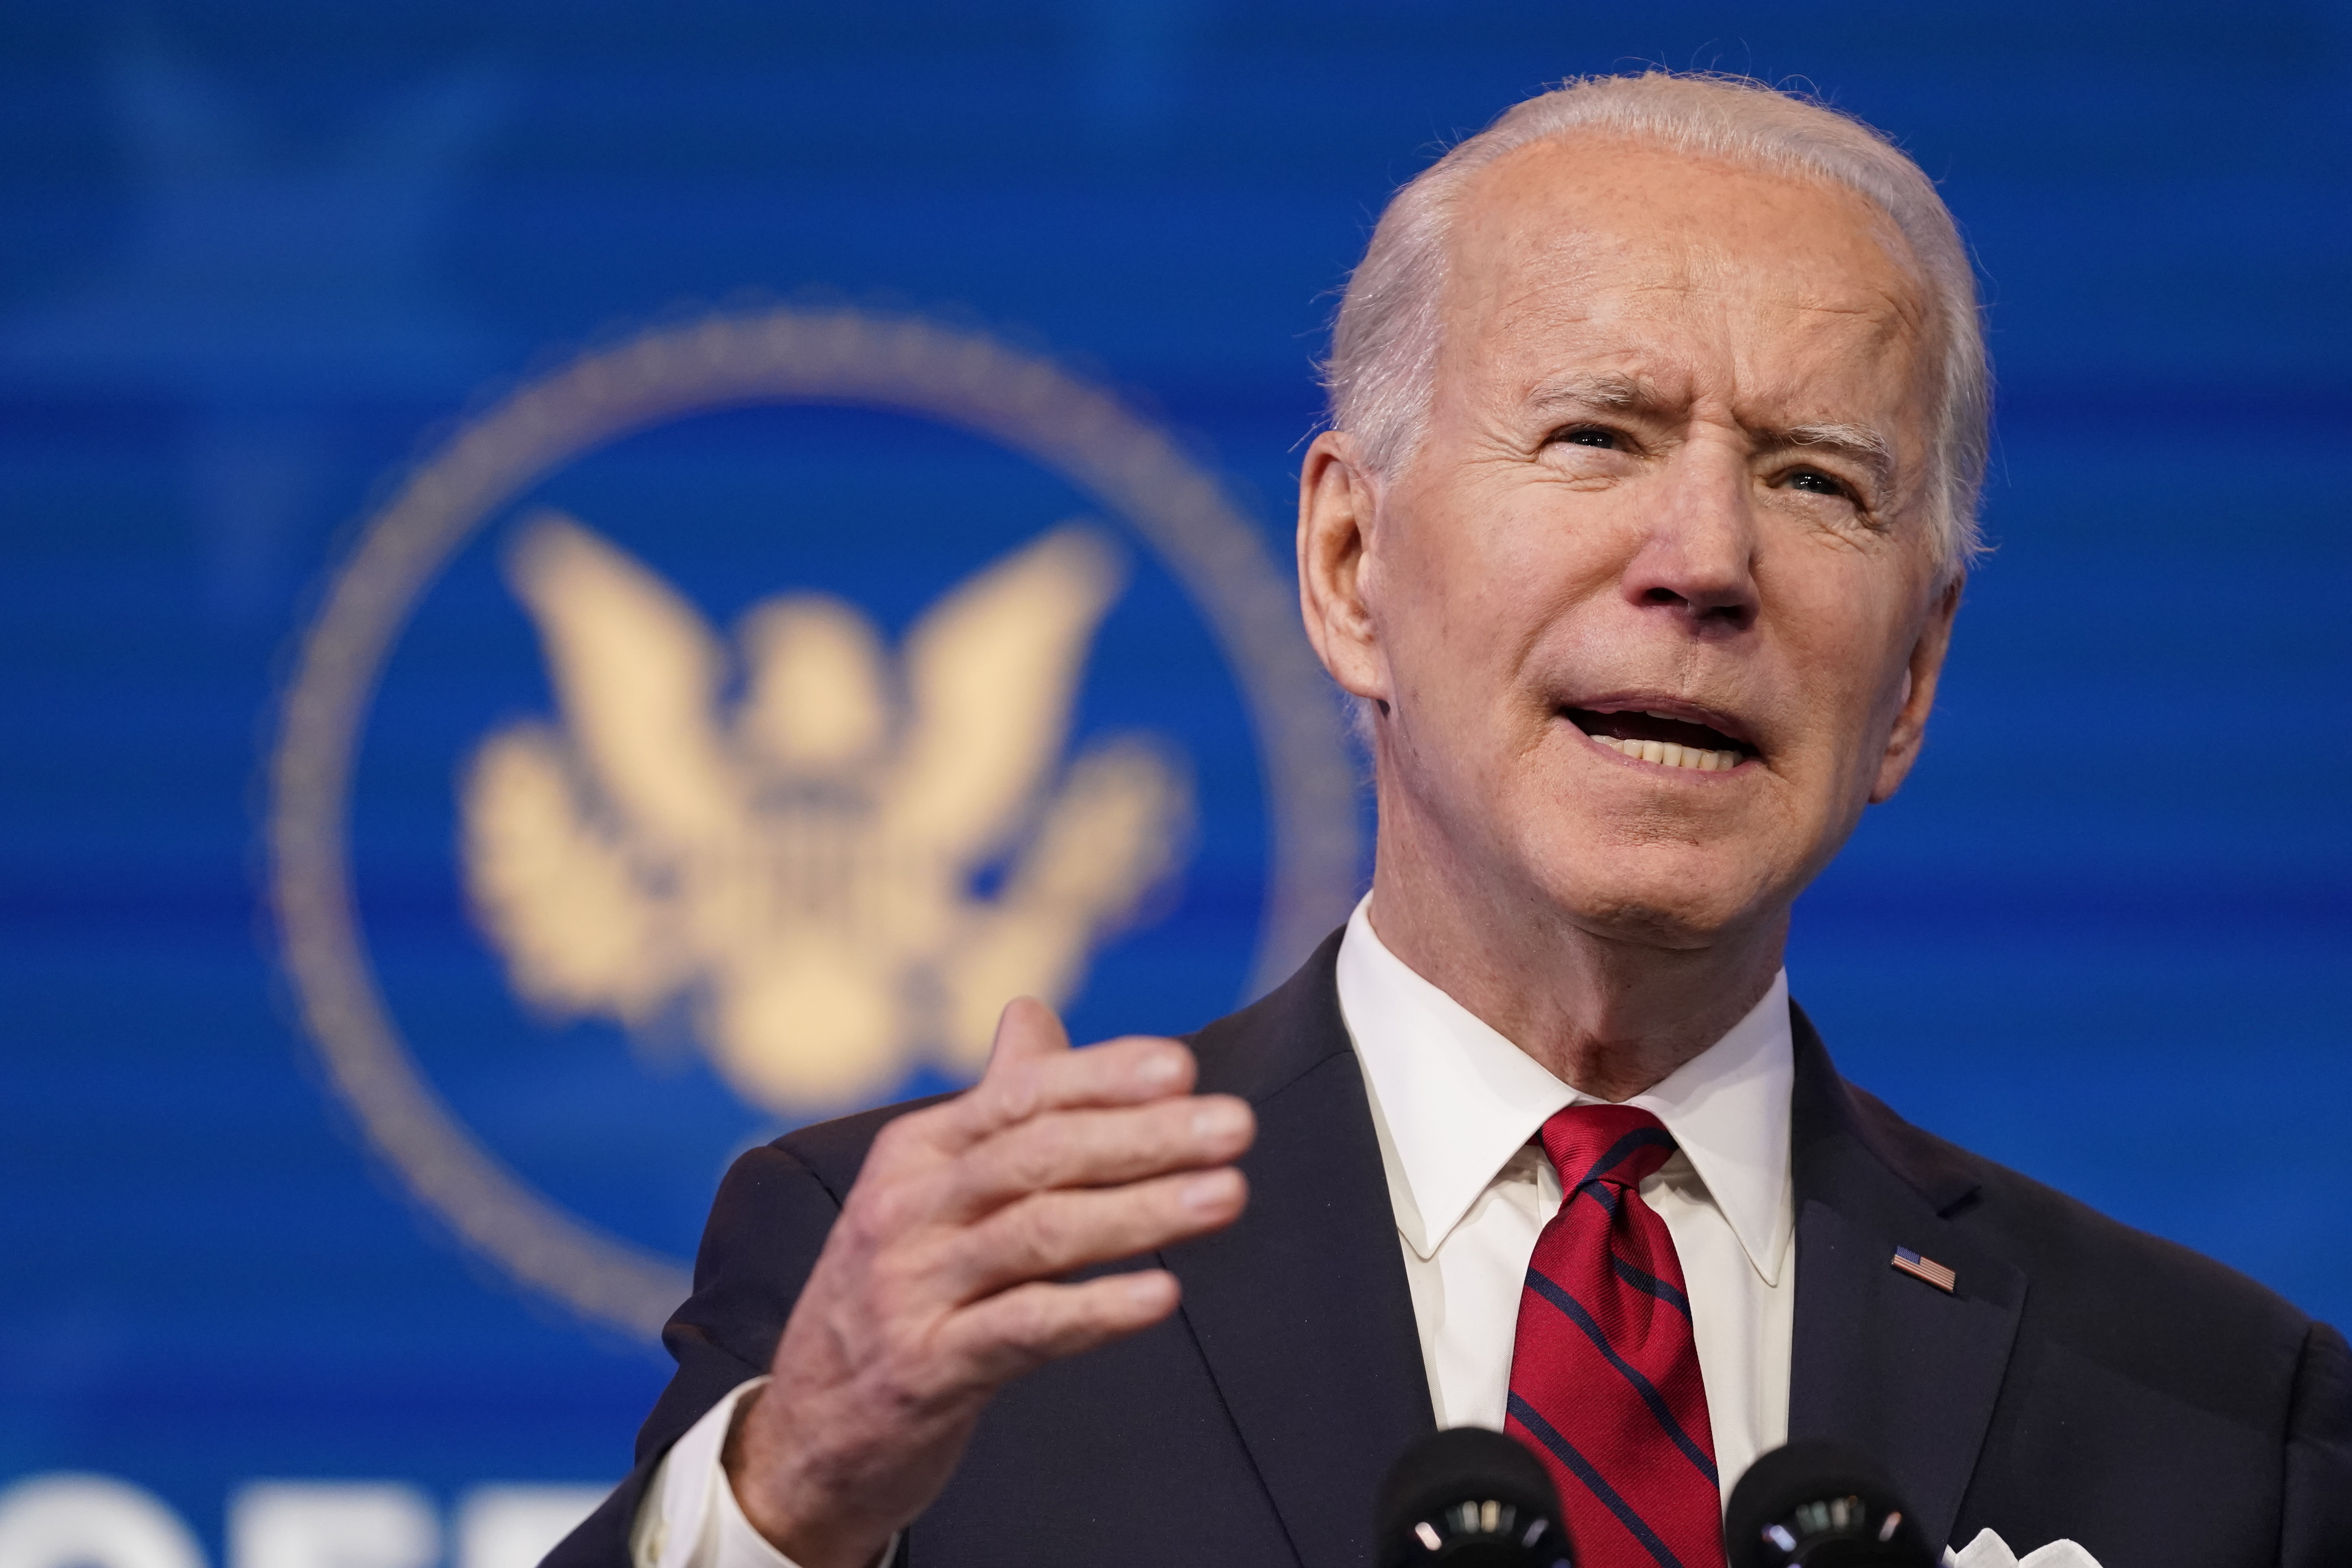 President-elect Joe Biden speaks during an event at The Queen theater, Friday, Jan. 15, 2021, in Wilmington, Del.